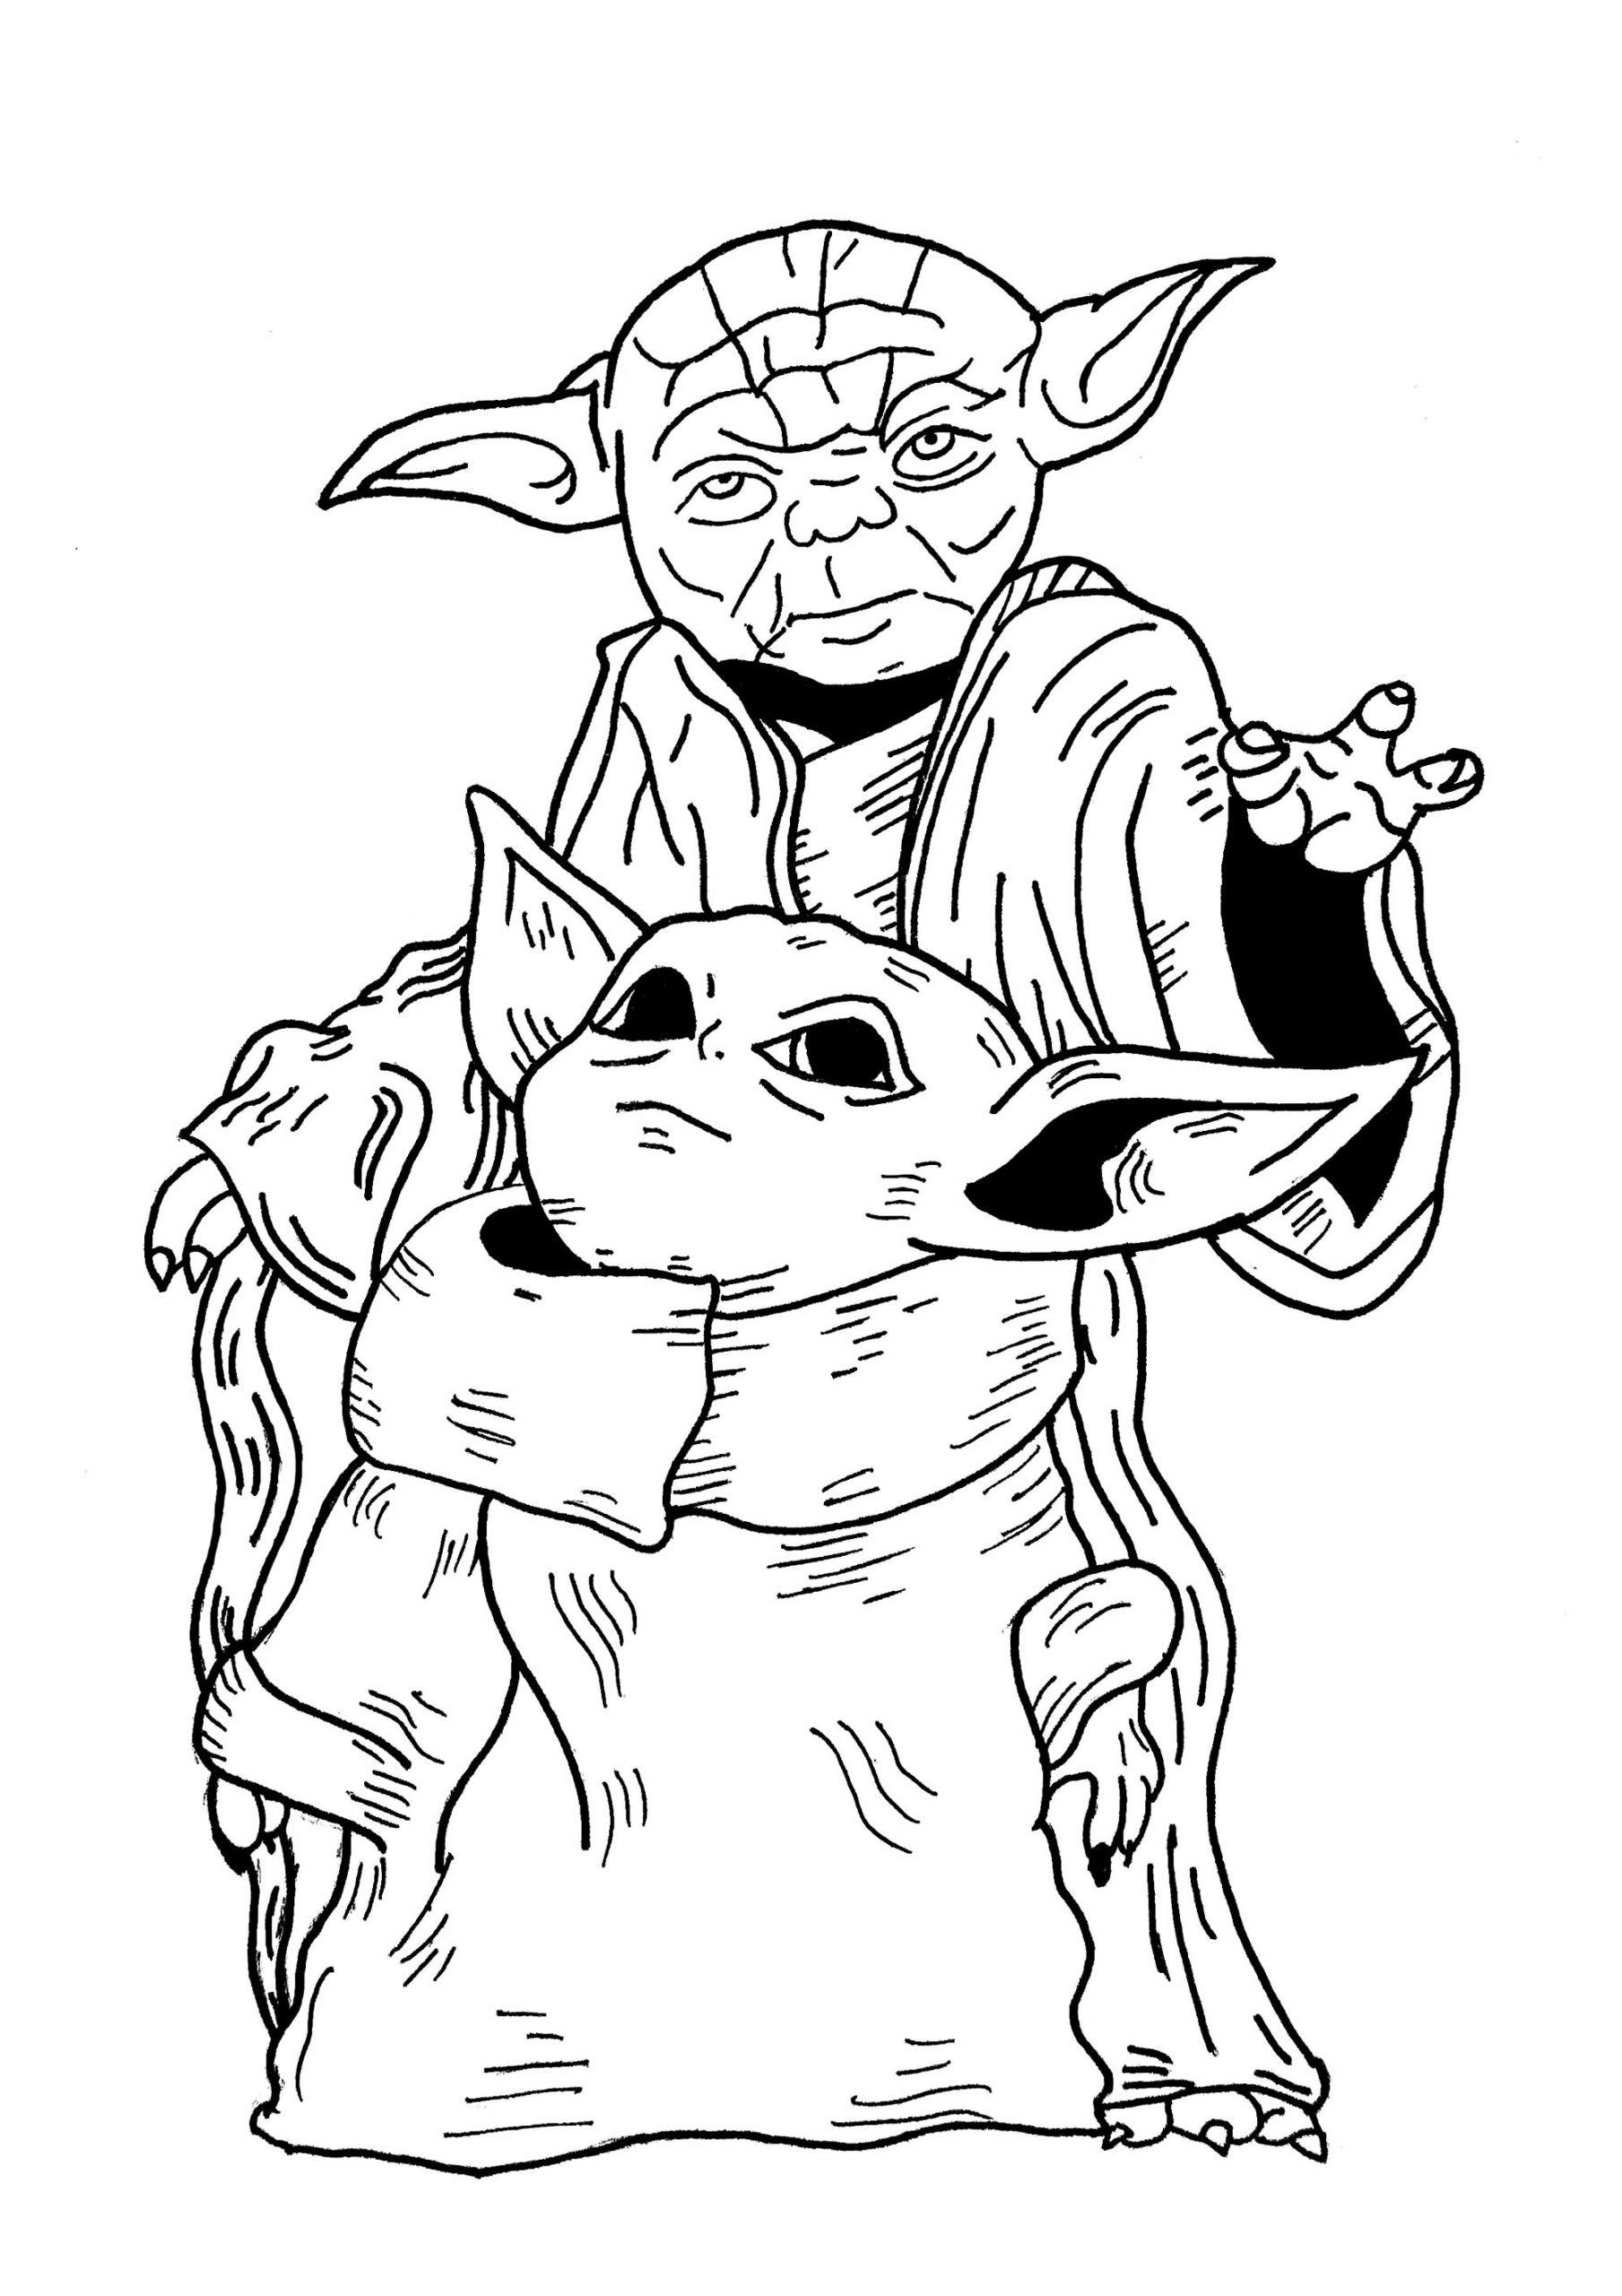 Geek Out Art Free Baby Yoda Coloring Page Coloring Pages Free Christmas Coloring Pages Star Wars Drawings